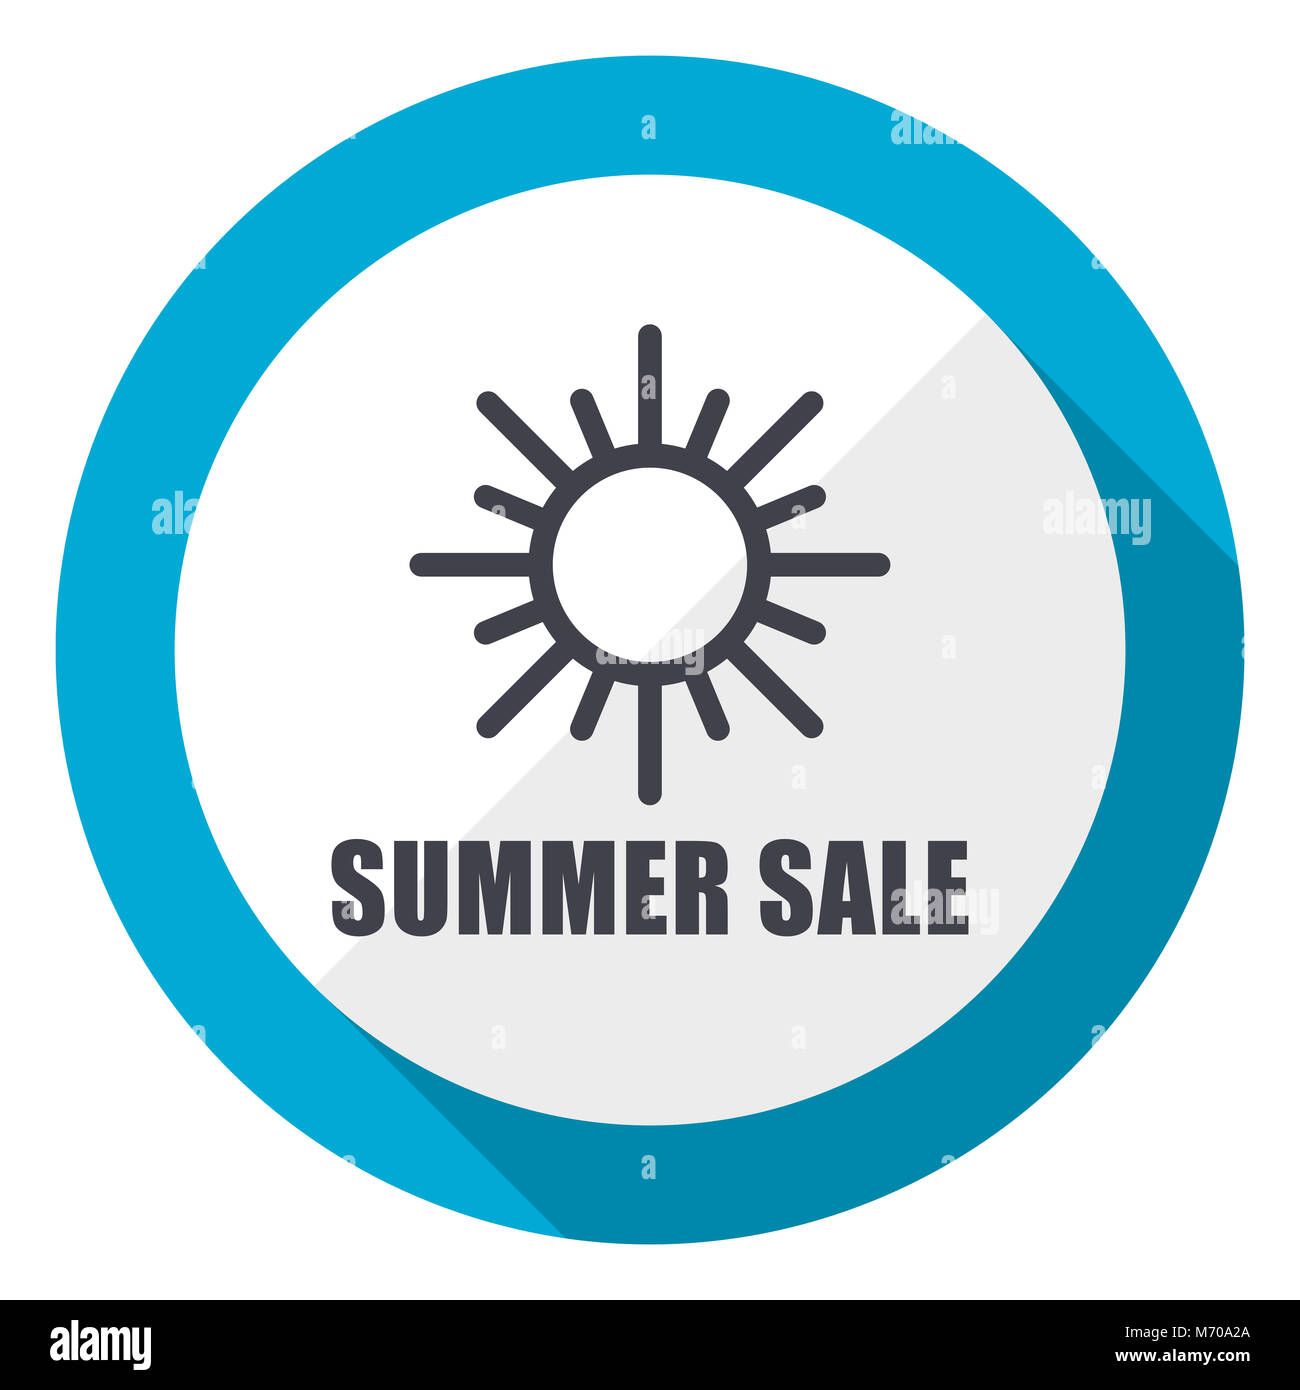 Summer sale blue flat design web icon - Stock Image